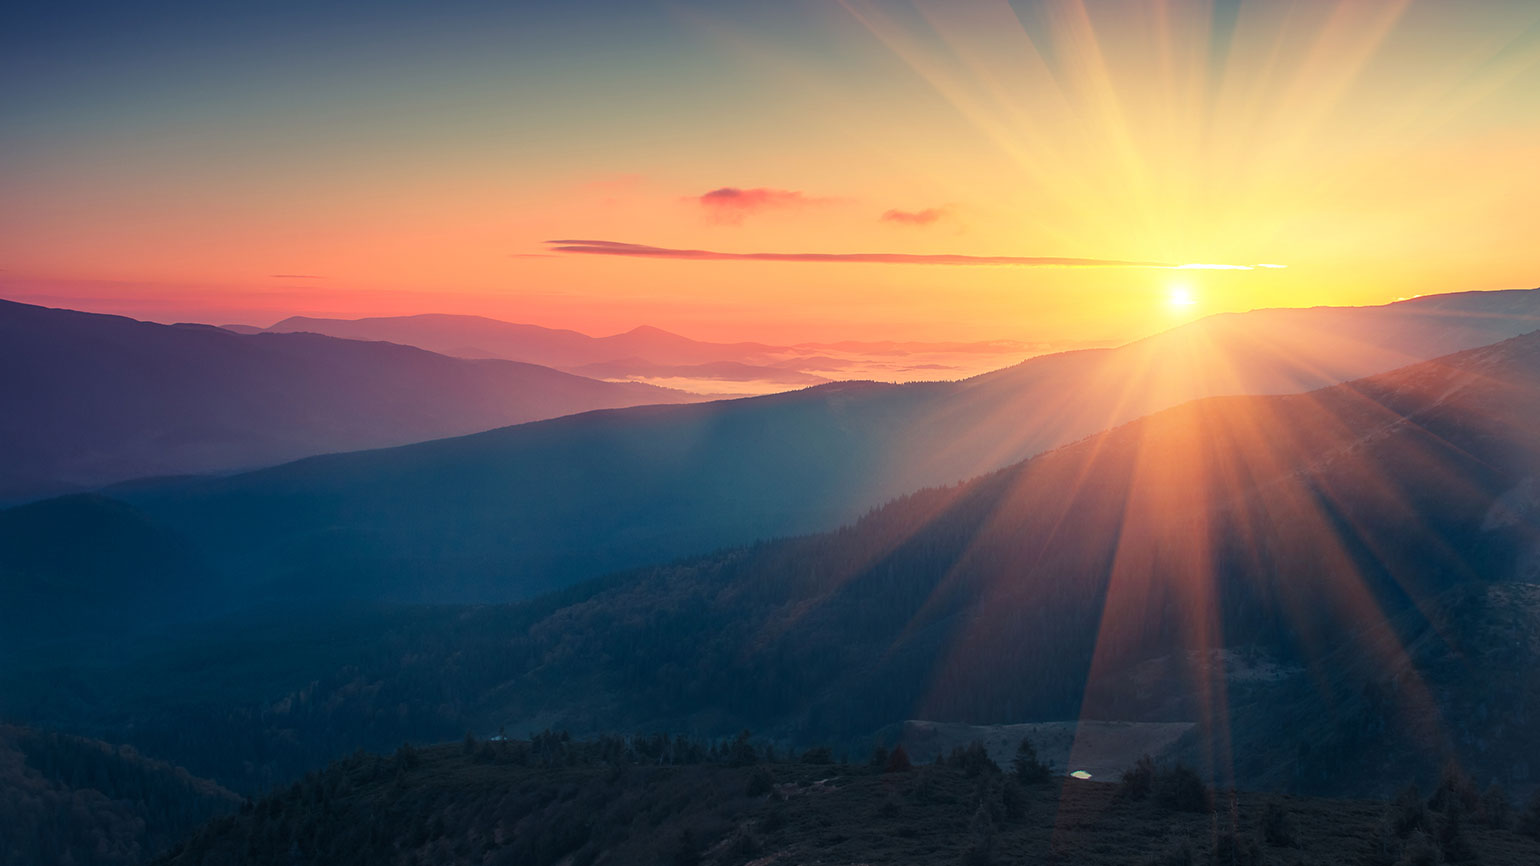 The sun rises over mountaintops